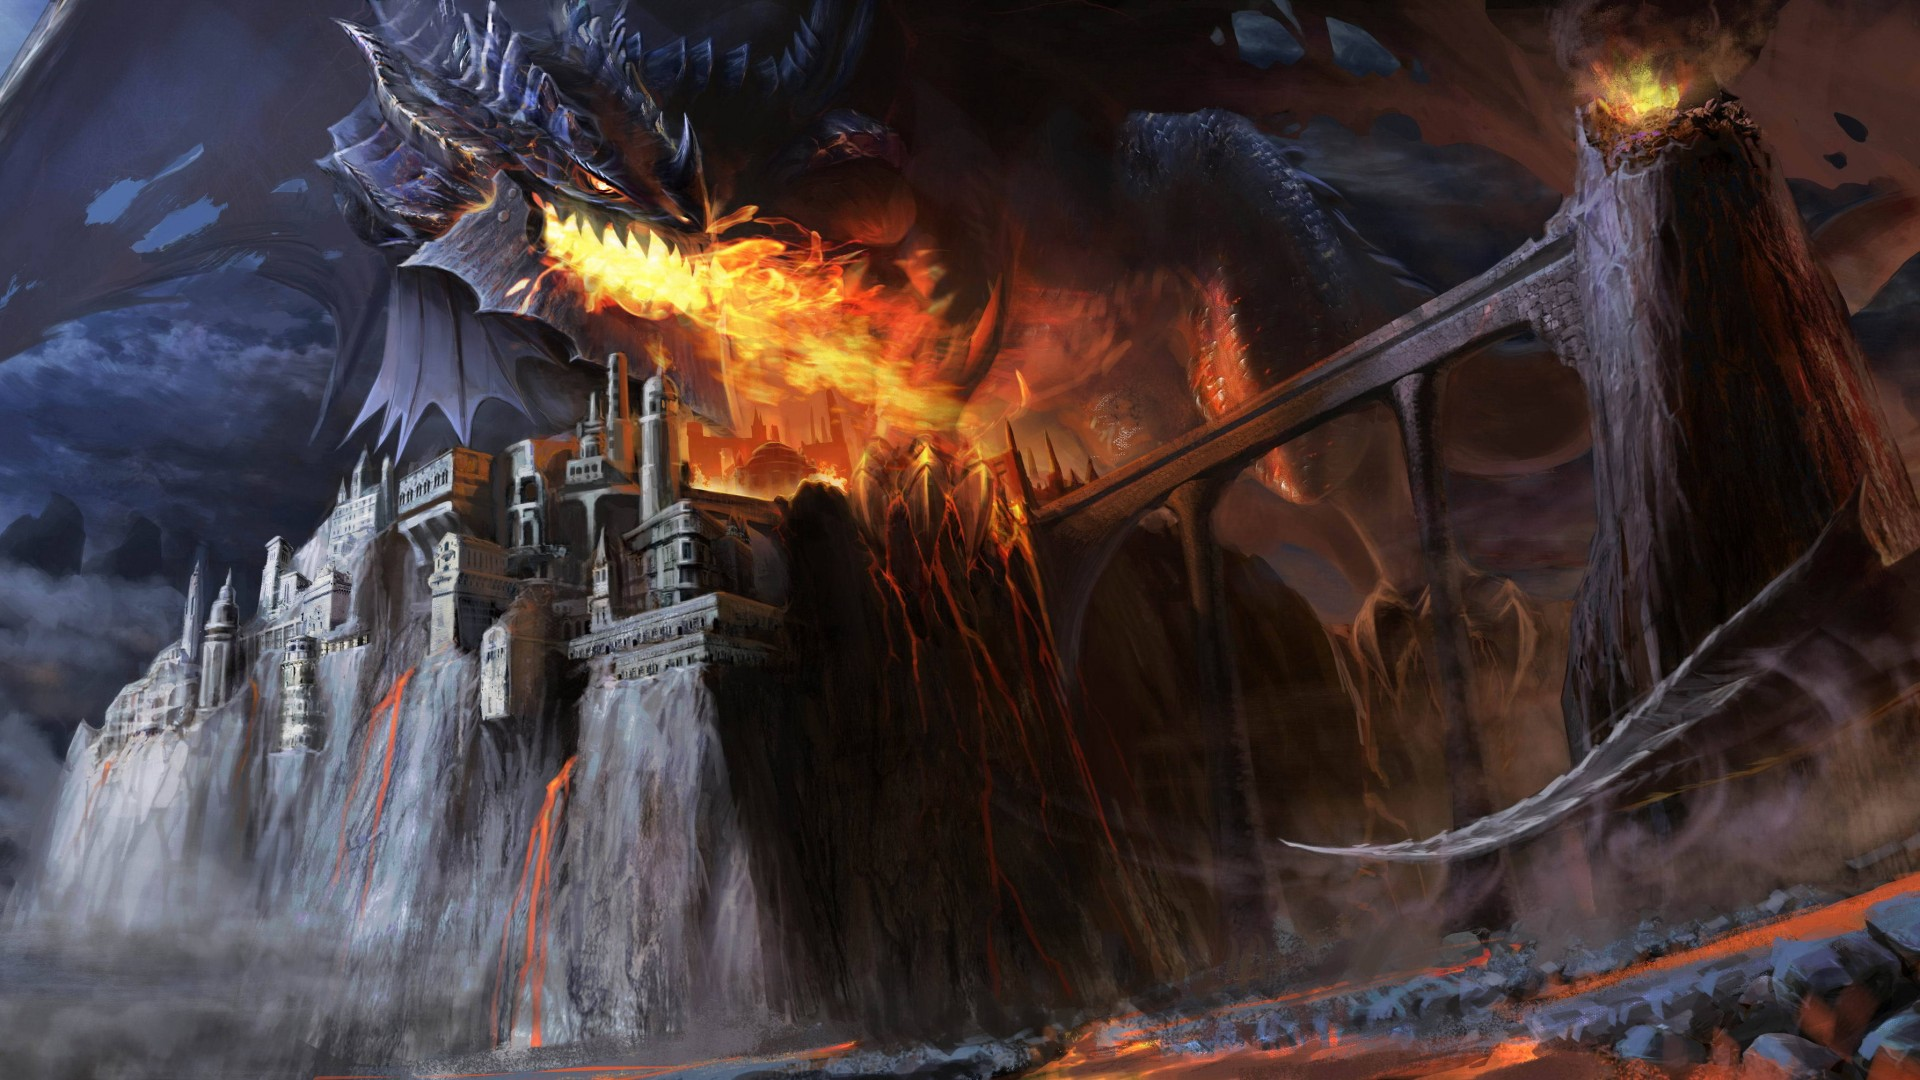 Dragon, Black, Fire, Castle, Bridge, Lava, Smoke, Fantasy, ...